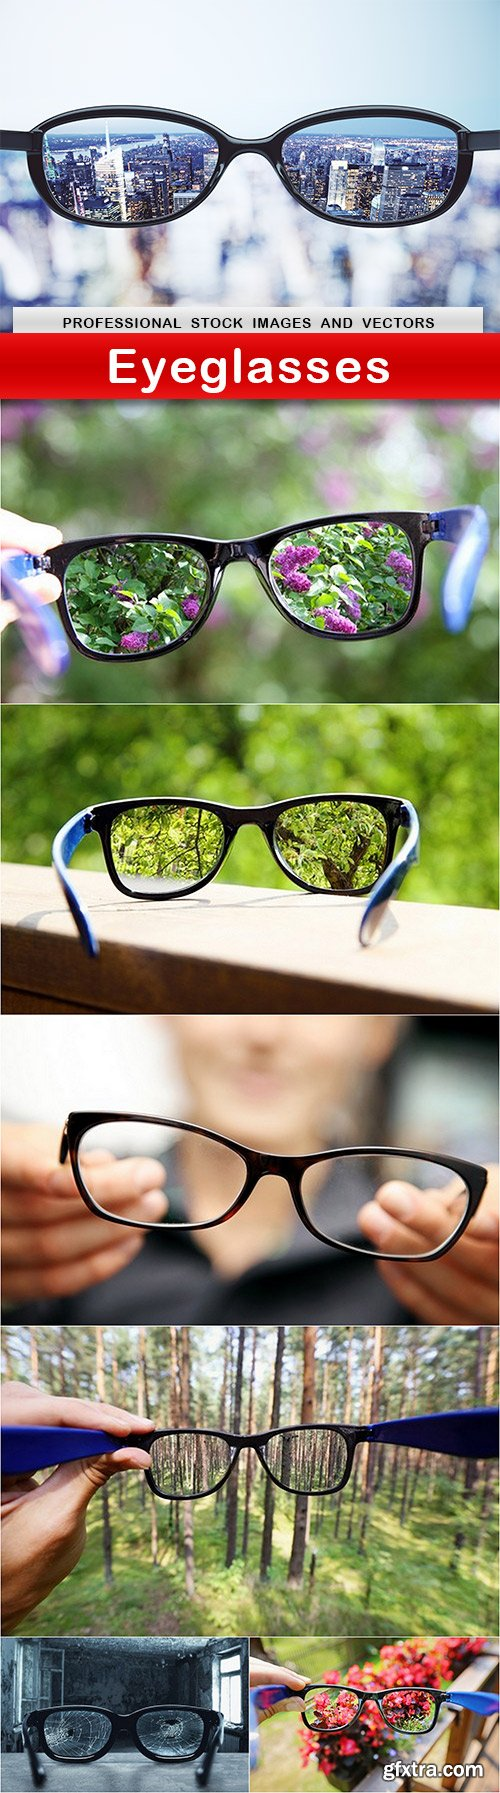 Eyeglasses - 7 UHQ JPEG